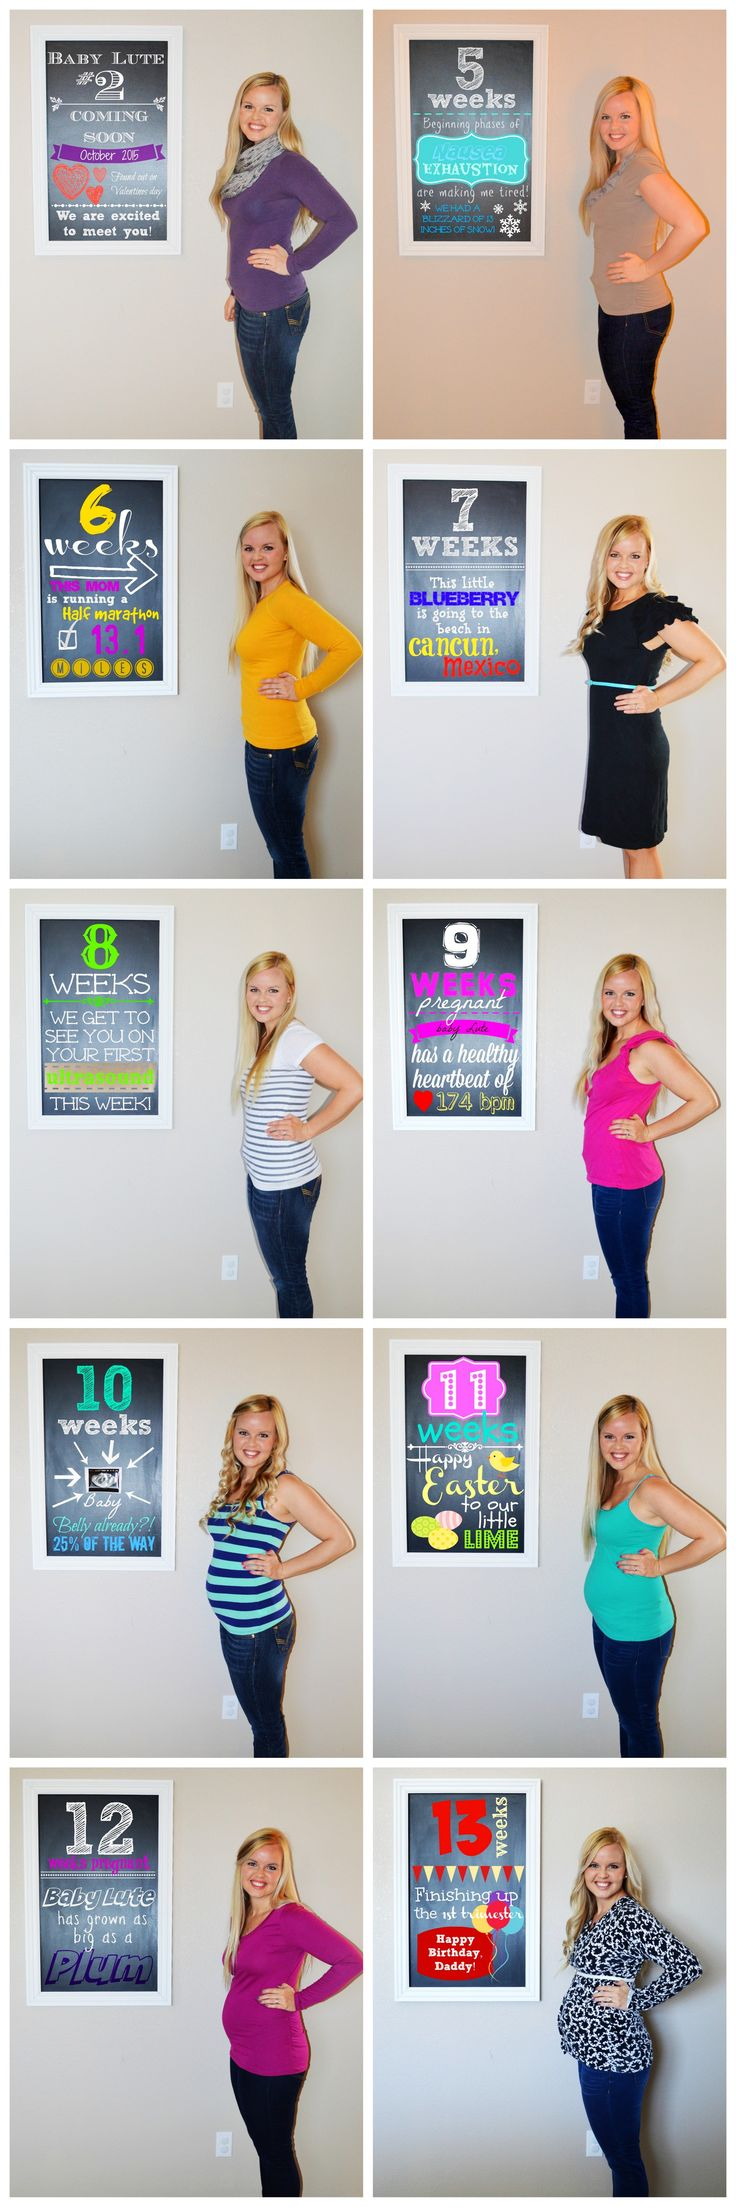 I am a fan of progression collages. In my first pregnancy, I didn't start showing until the second trimester.  With baby #2, that's a different story.  See my progression of weeks 4-13: